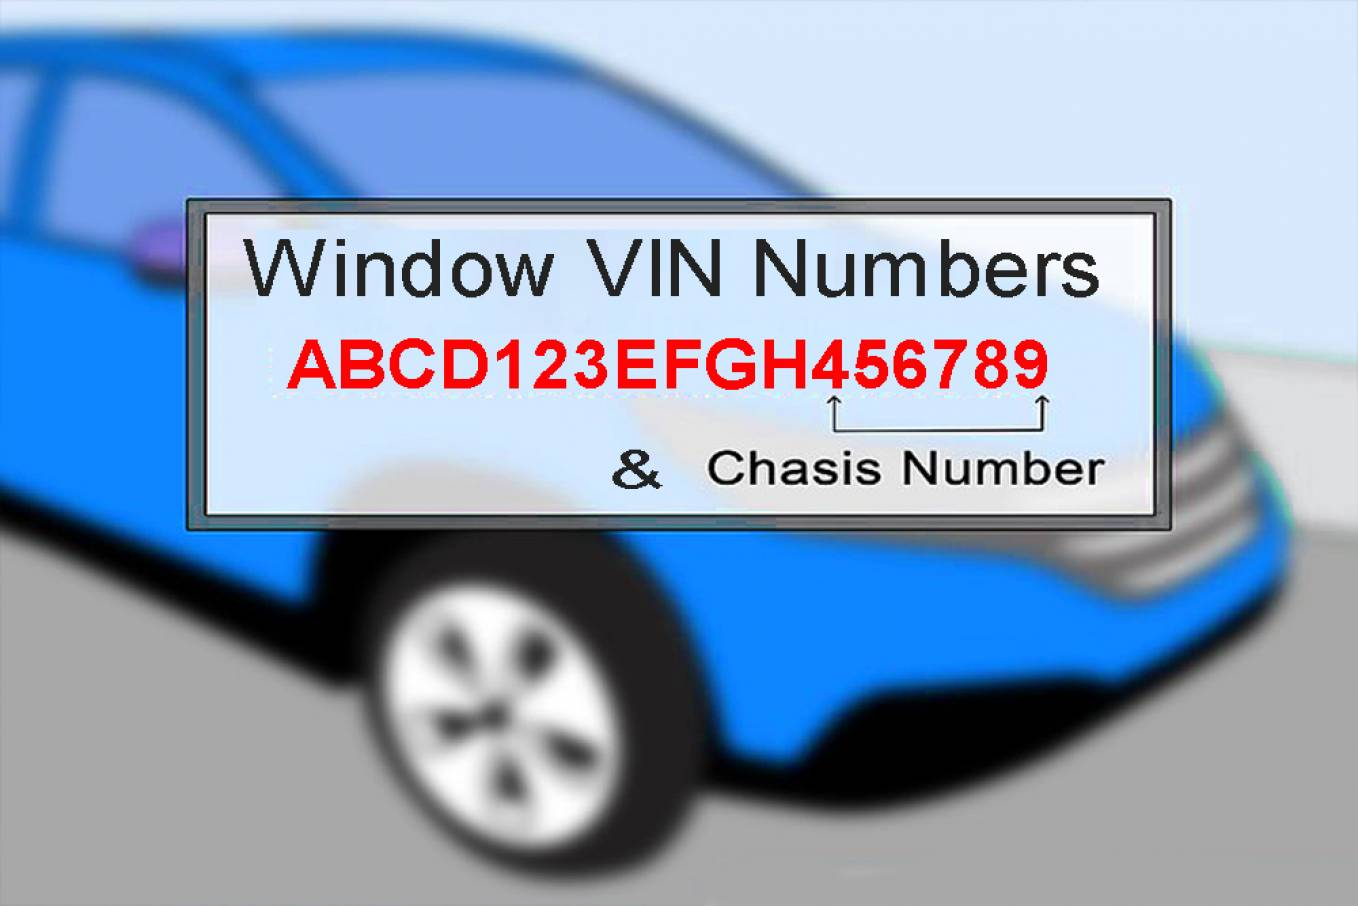 Windows Vin Stickers